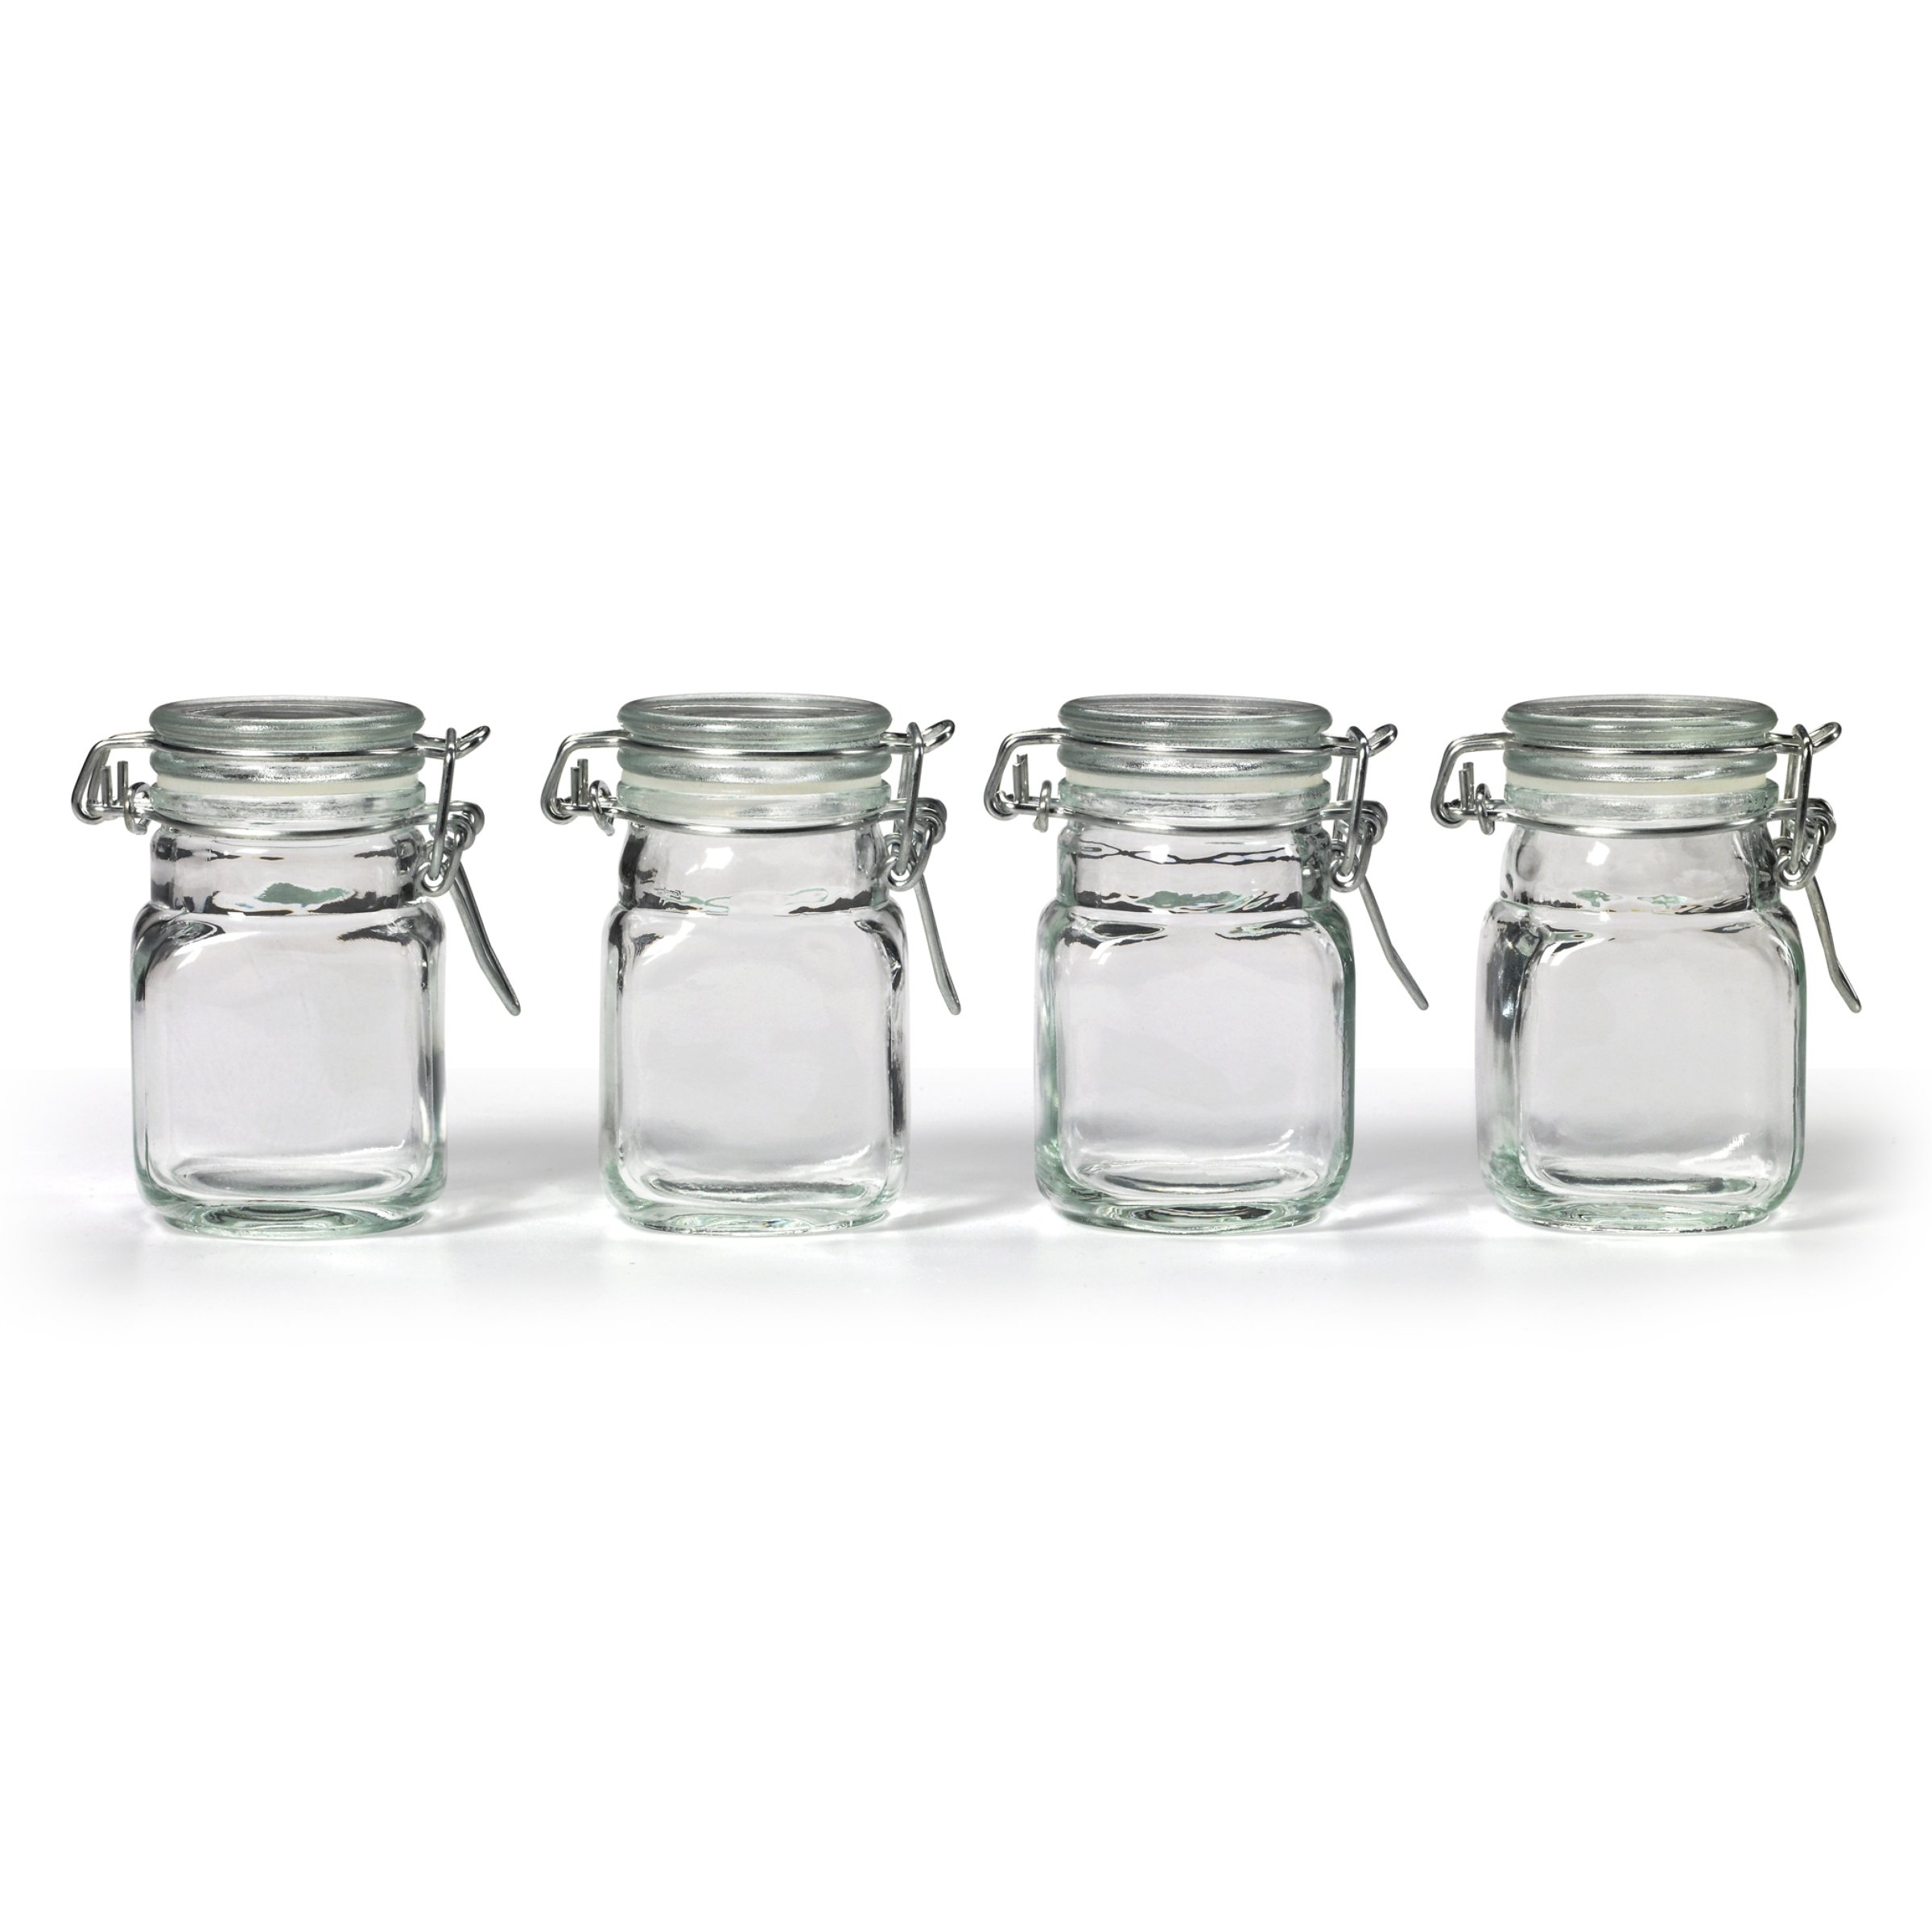 Vasetti Vetro Amazon New Square Glass Jar And Hinge Lid Set 4 Piece Kitchen